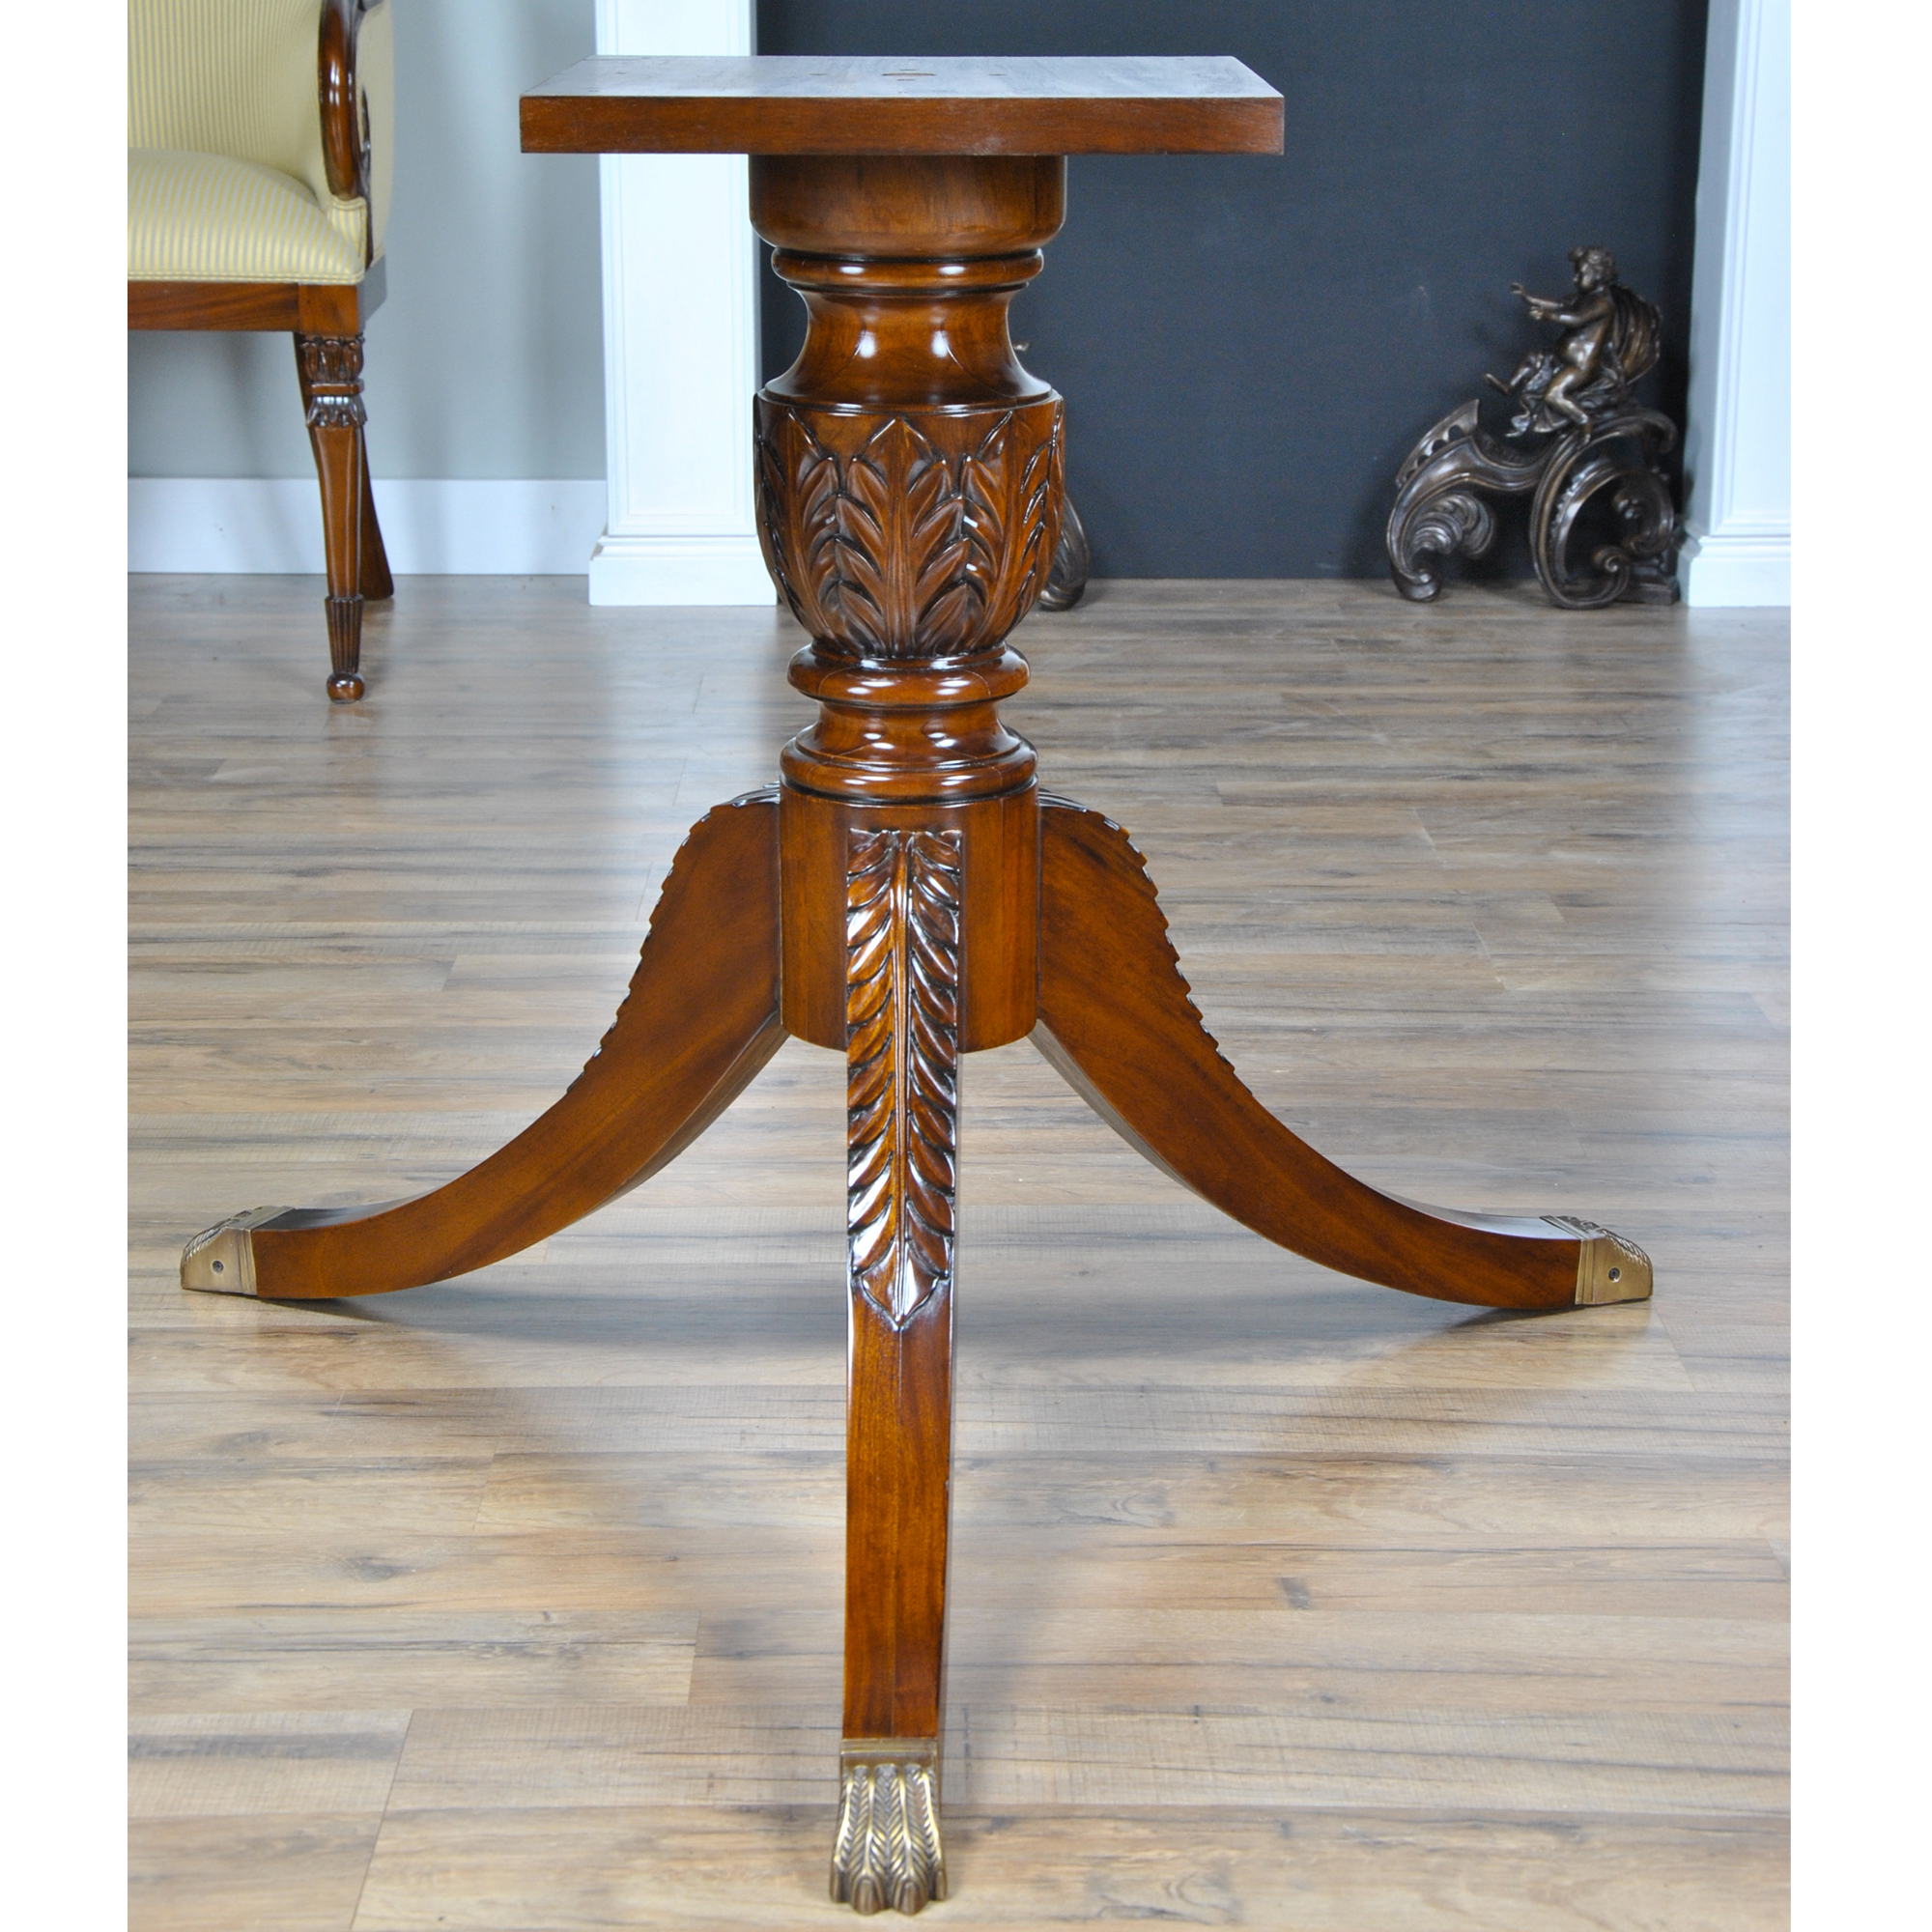 click to our woodturning feet bun pedestal dalby table legs sets direct other and see turnings furniture dave